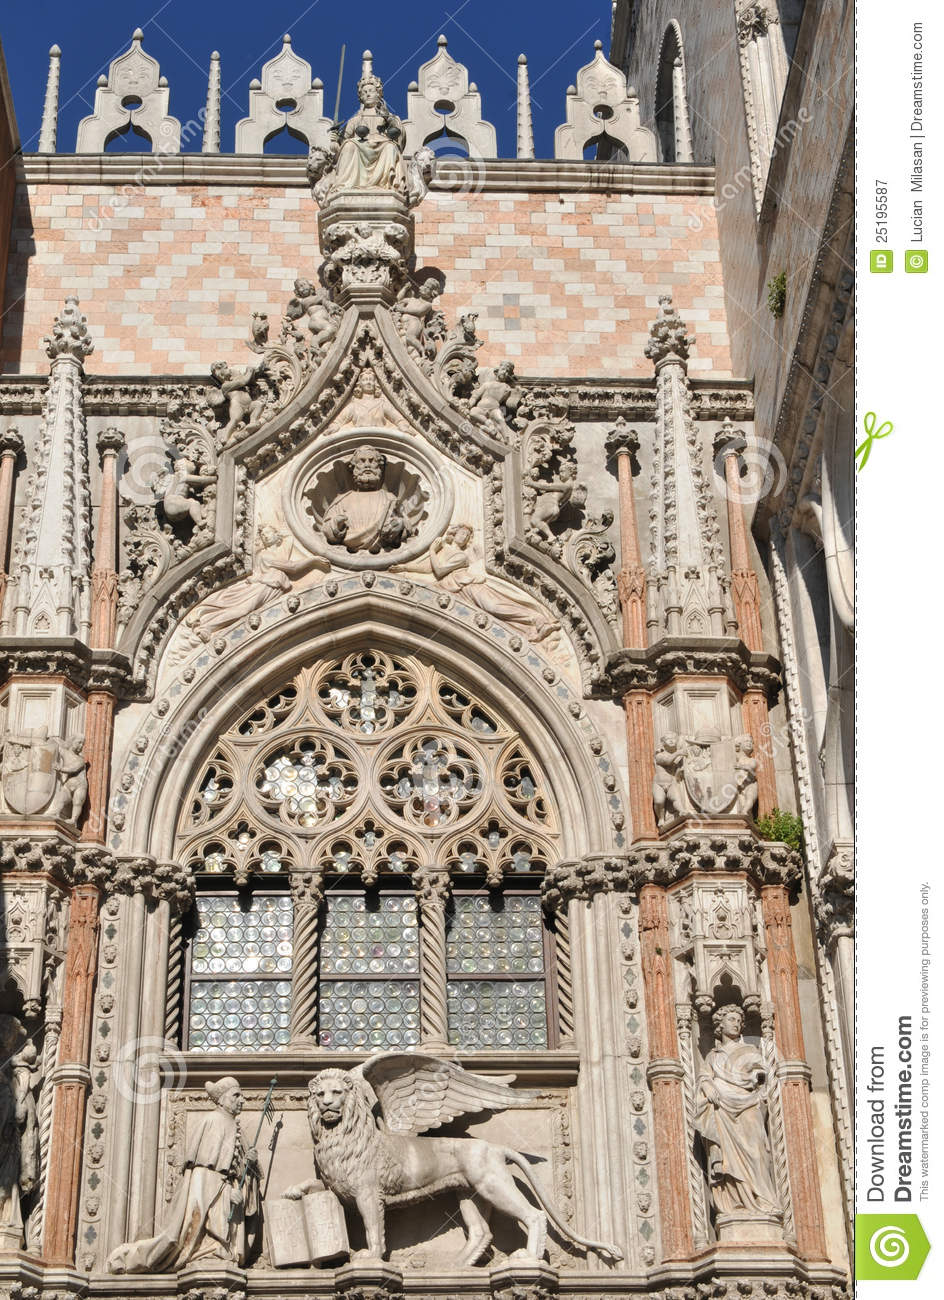 venetian architecture royalty free stock photography image 25195587